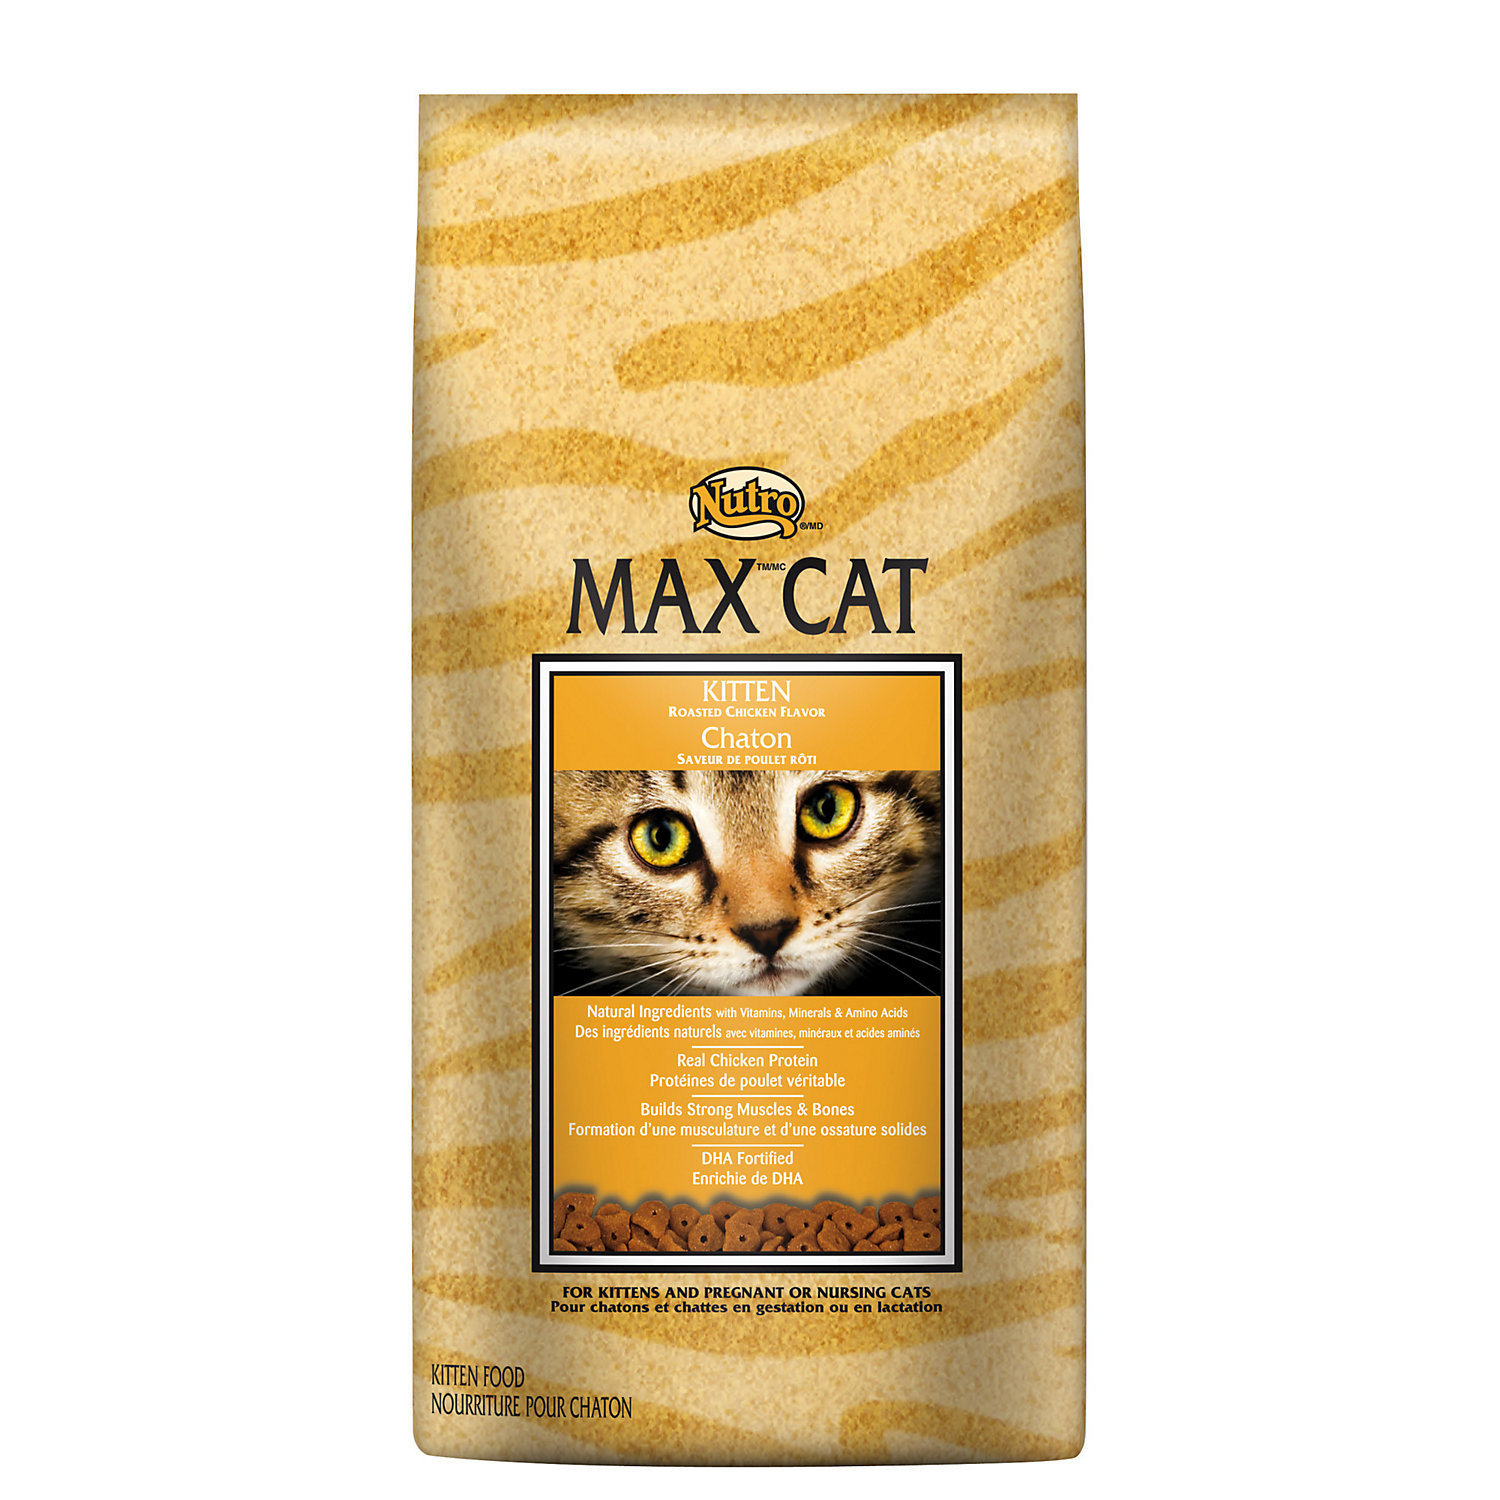 Nutro MAX CAT Kitten Food - Roasted Chicken Flavor 6 lbs. (1/20) (A.H2)